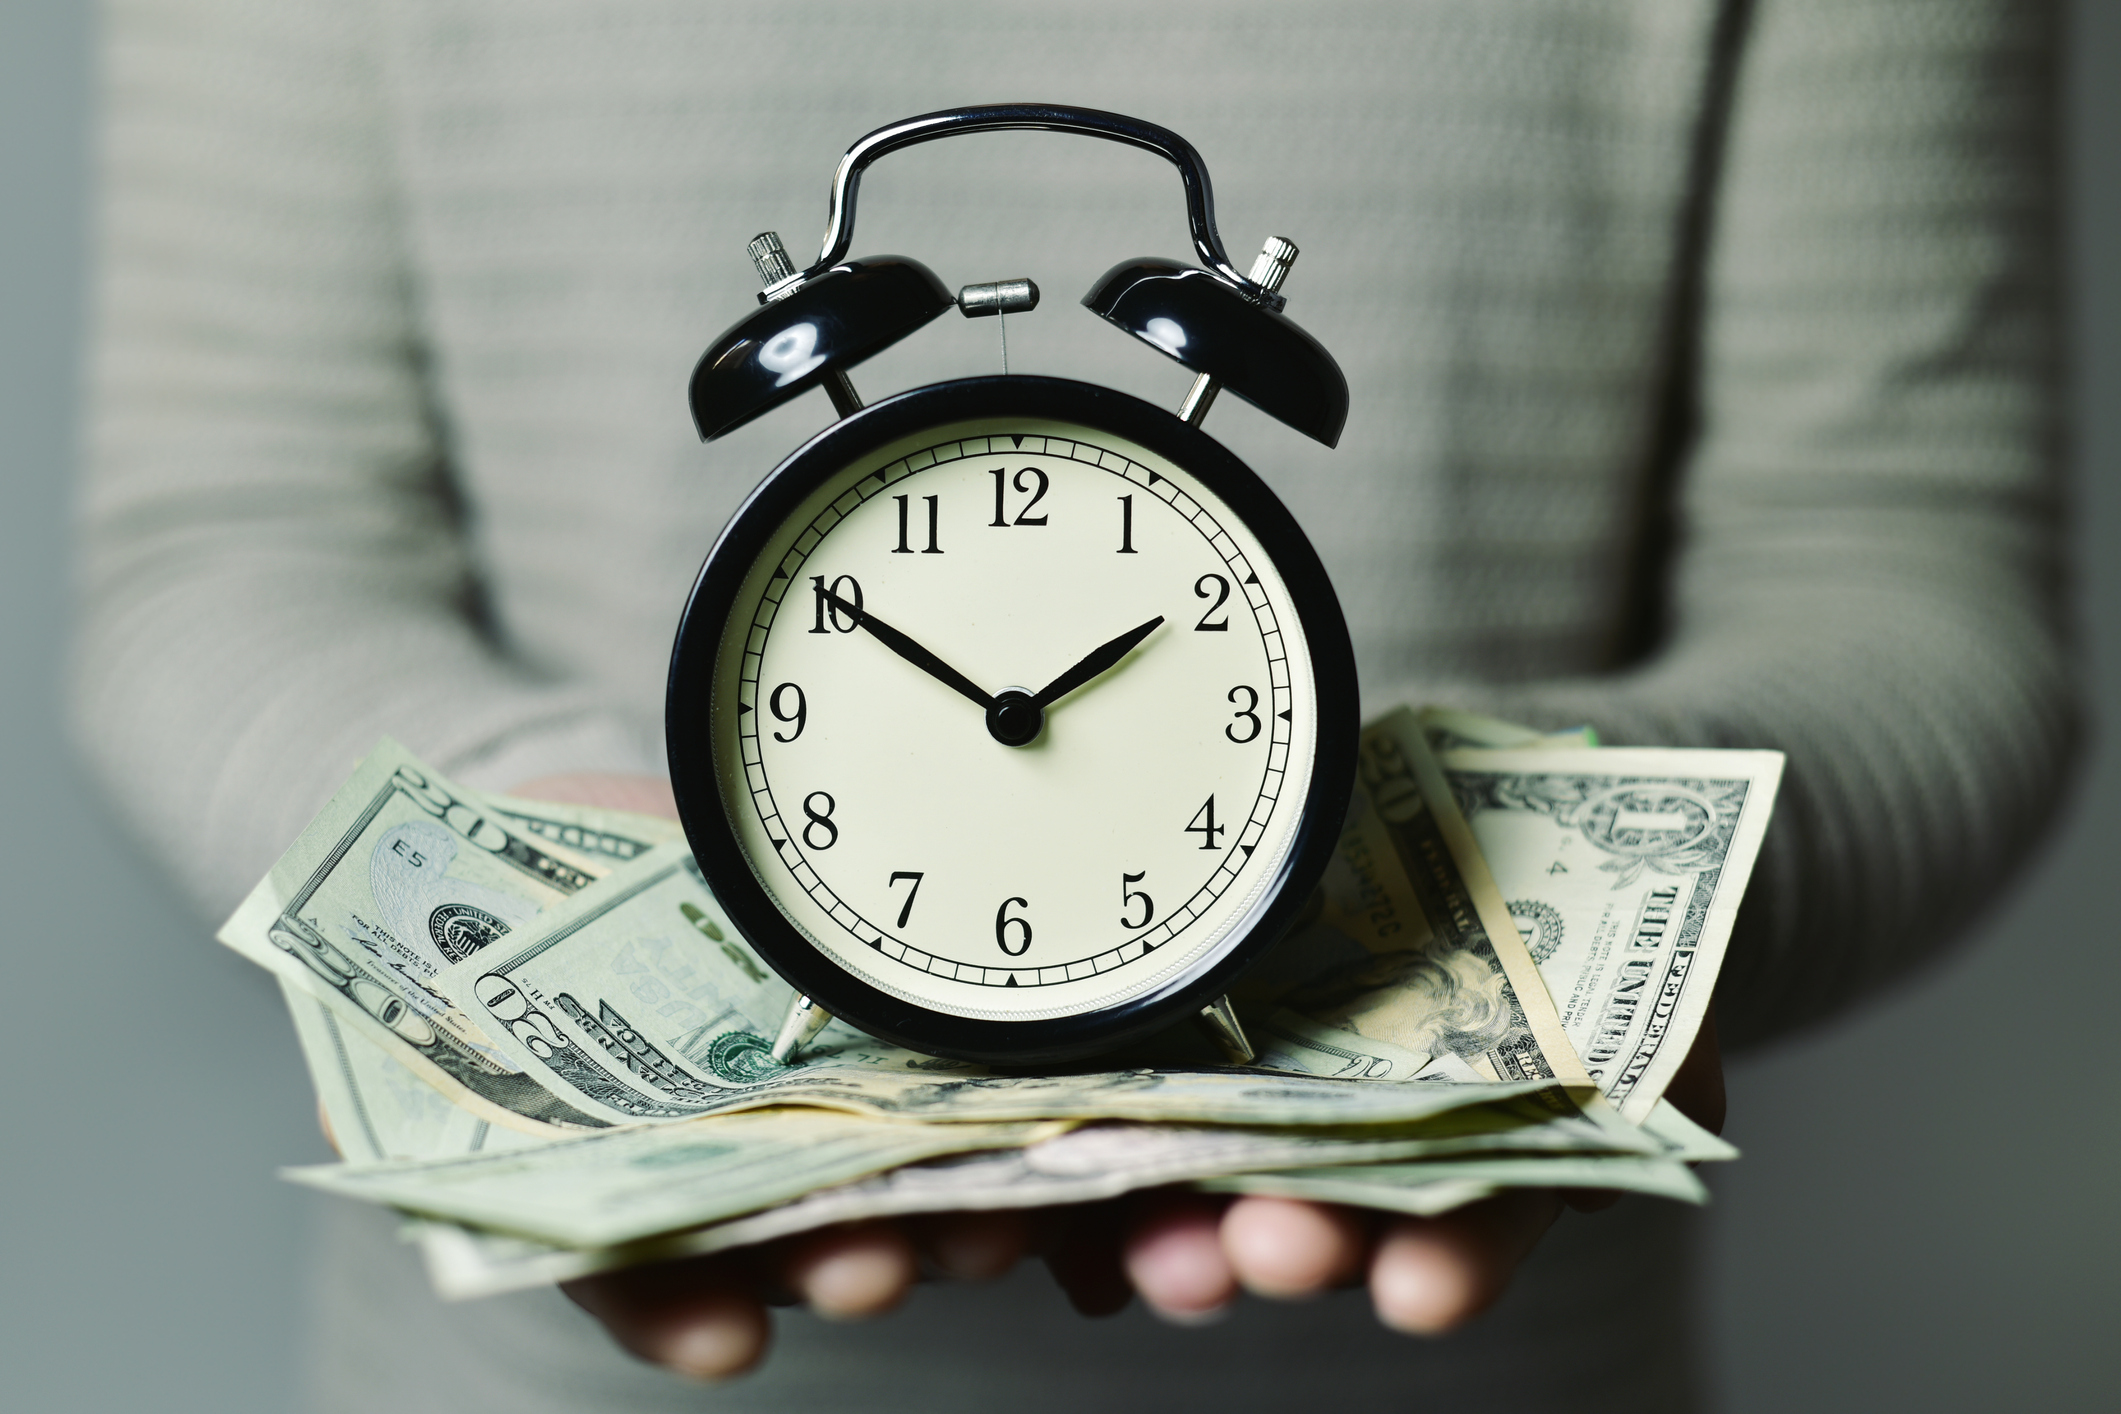 Exceptional Time Savings - You can experience exponential time savings when you outsource your accounting and free yourself from time-draining, highly complex compliance work— time better spent with your dental practice and customers.